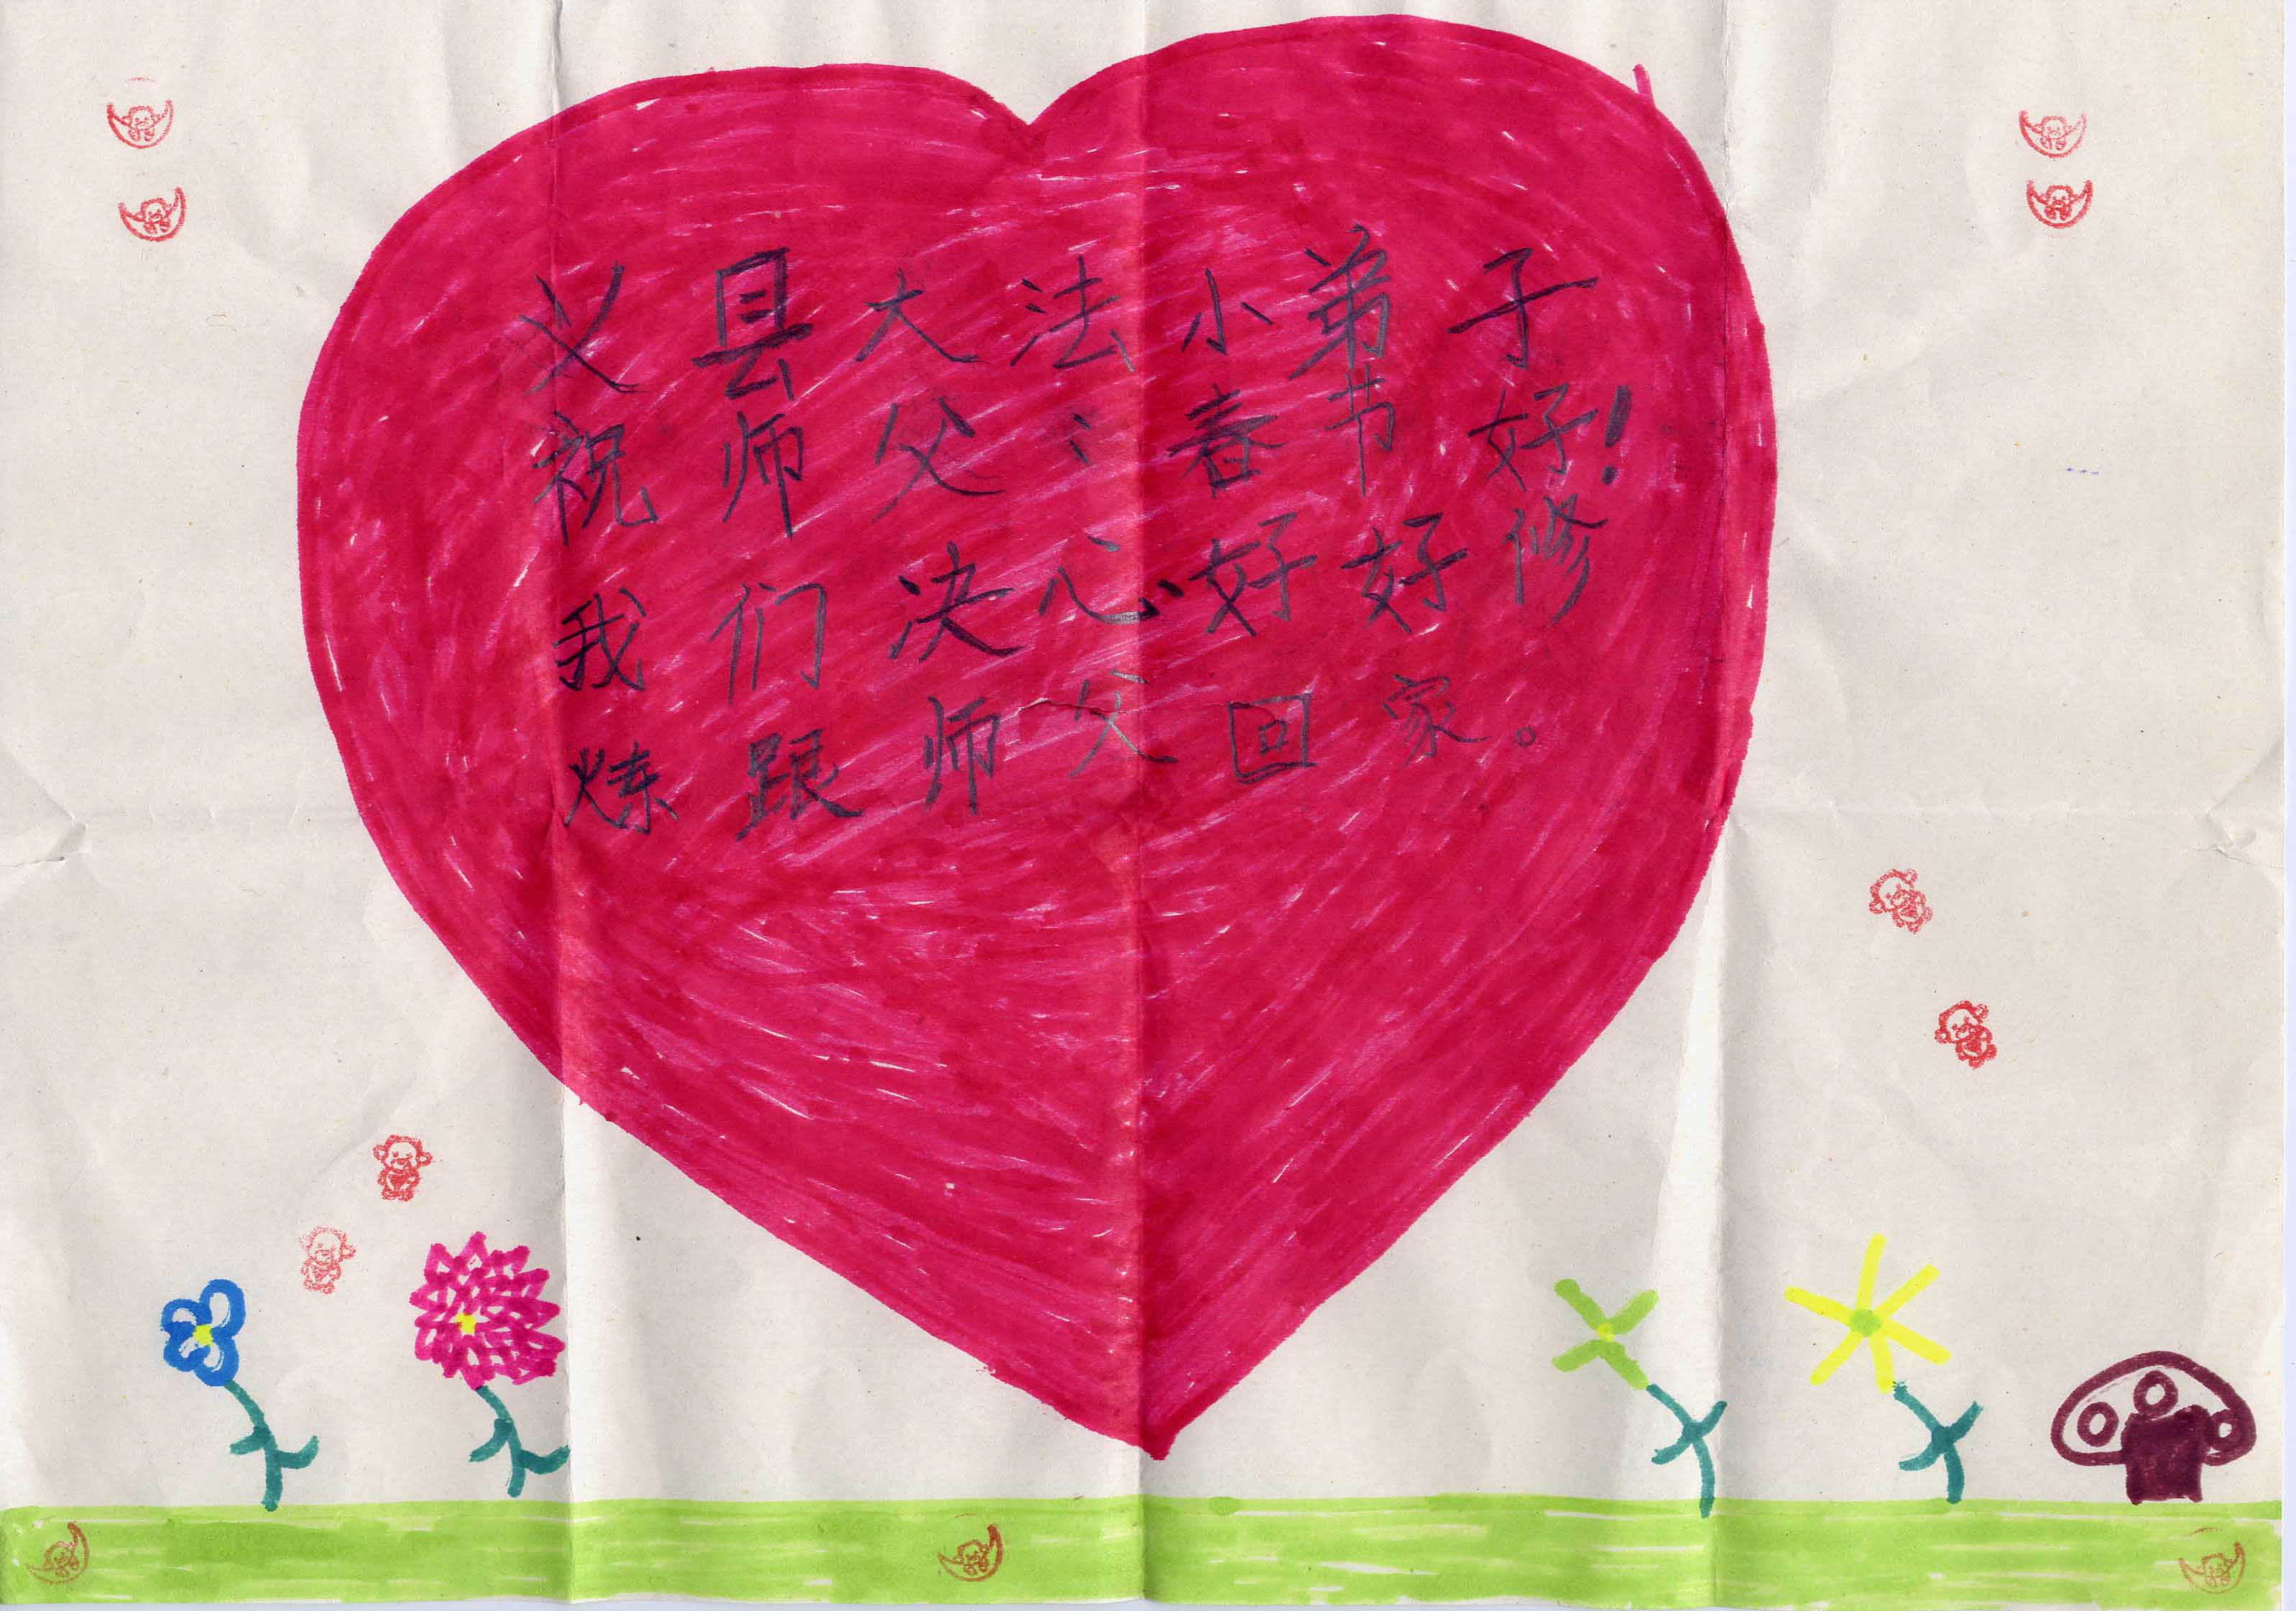 all practitioners from zhoukou city henan province wish teacher a happy chinese new year